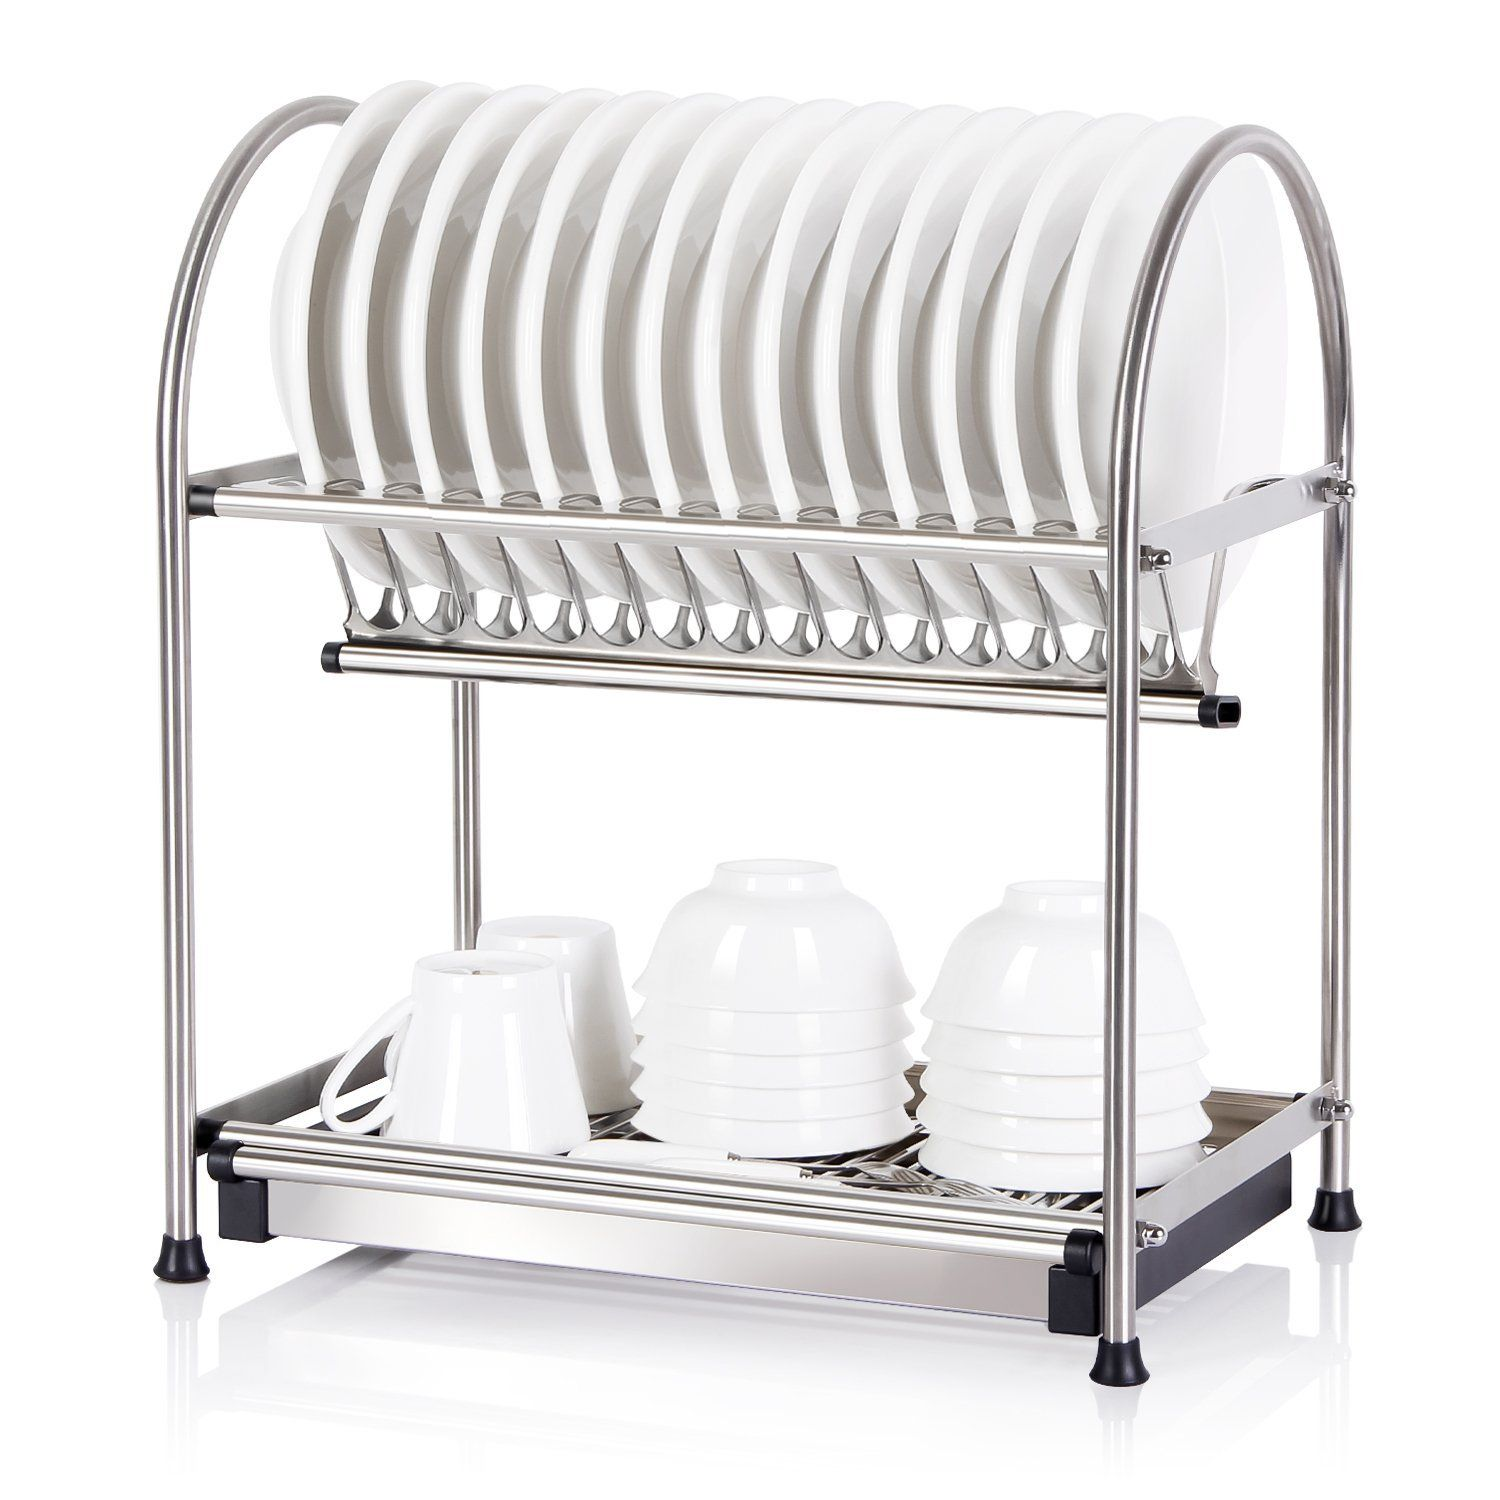 Lifewit Over The Sink 2 Tier Dish Drainer Drying Rack Holder